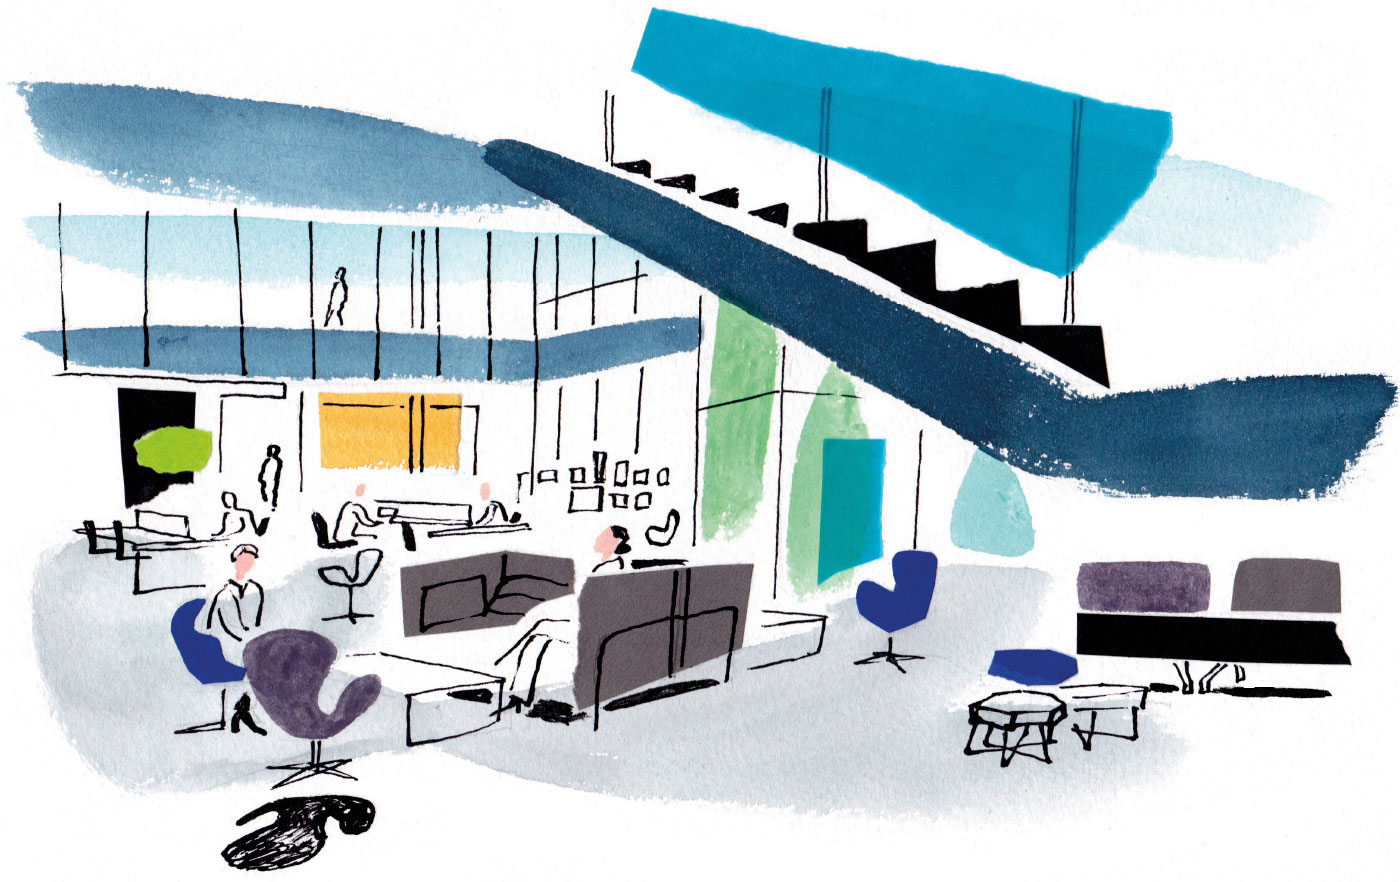 cb1-illustration-offices